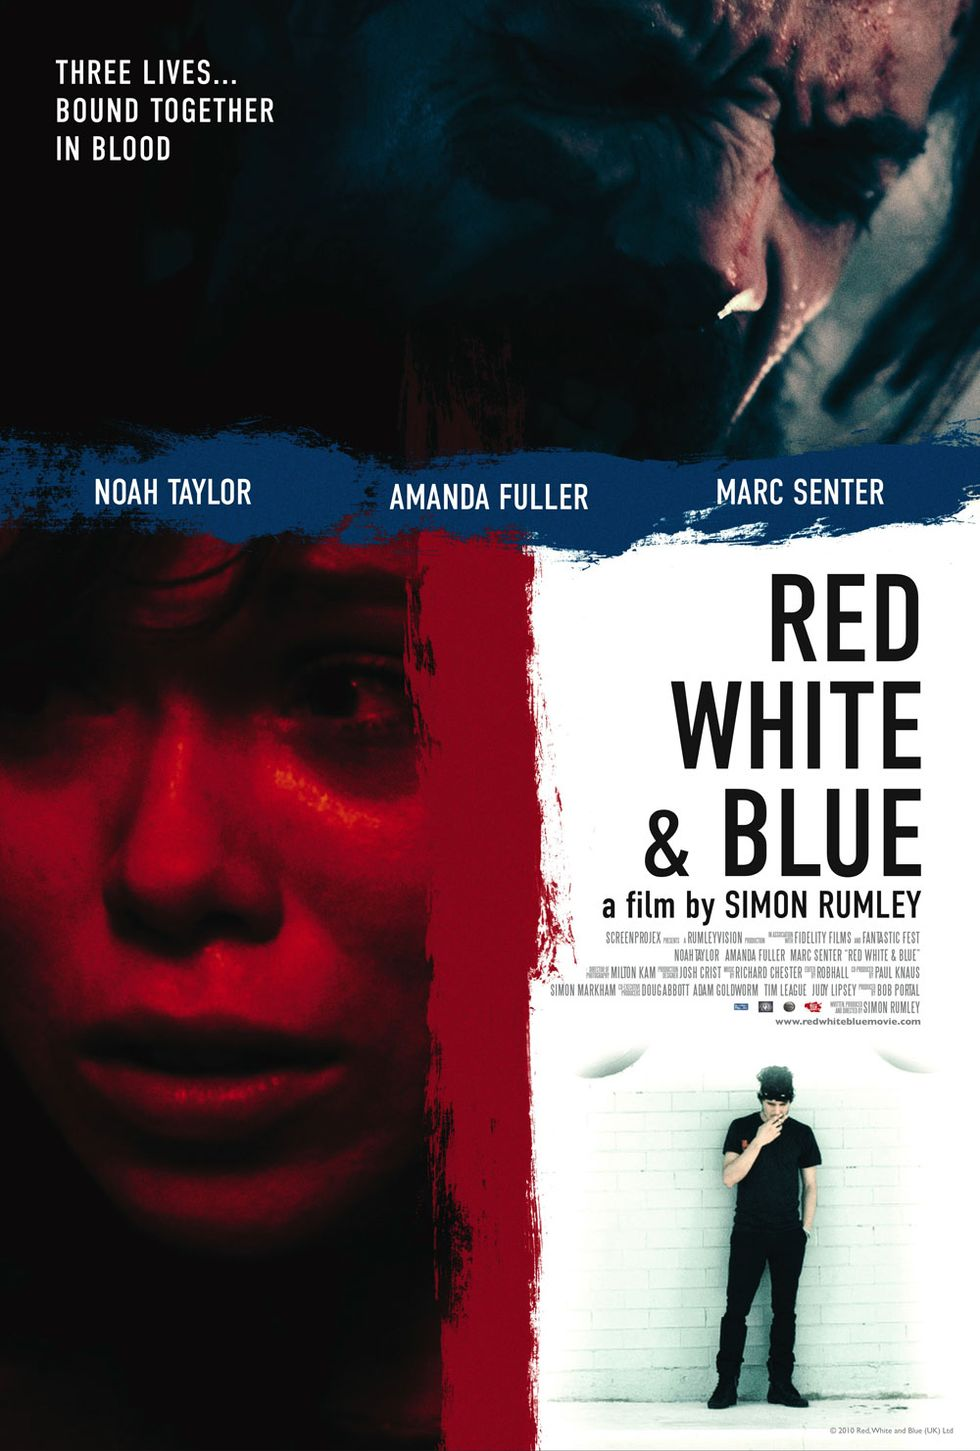 Harrowing Red, White & Blue Opens Friday!